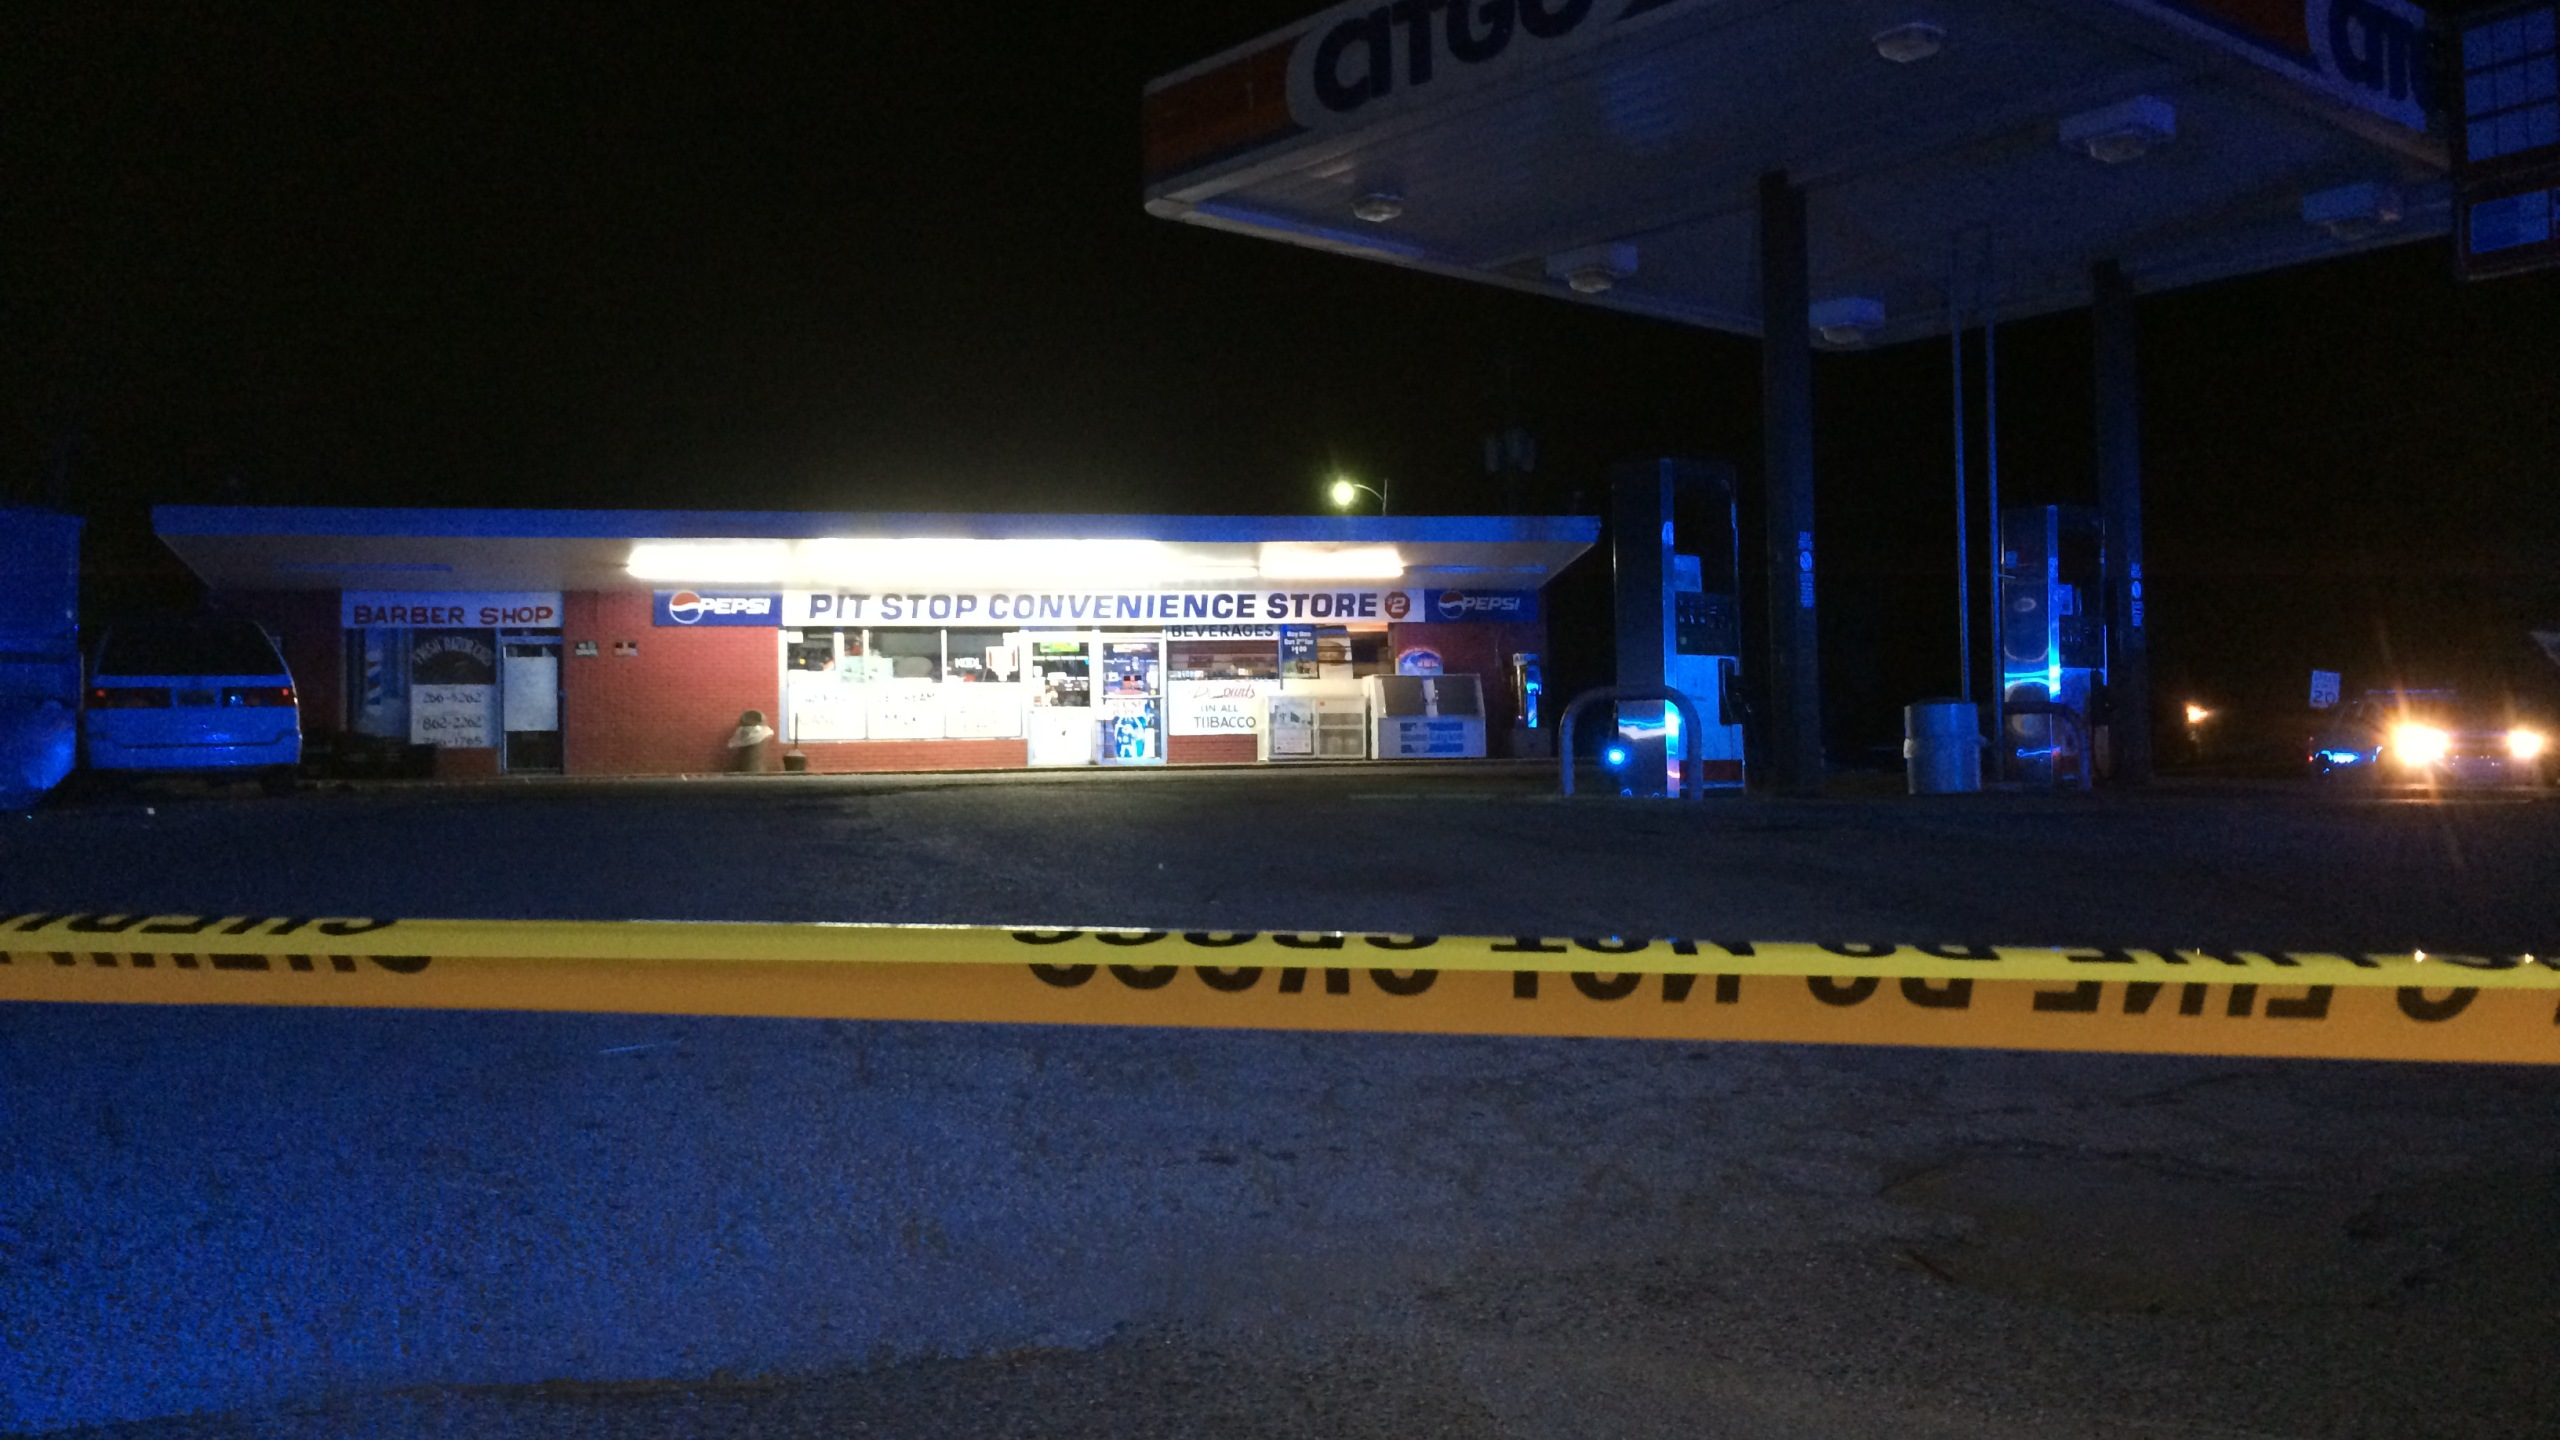 Pit Stop gas station robbery and shooting_198388